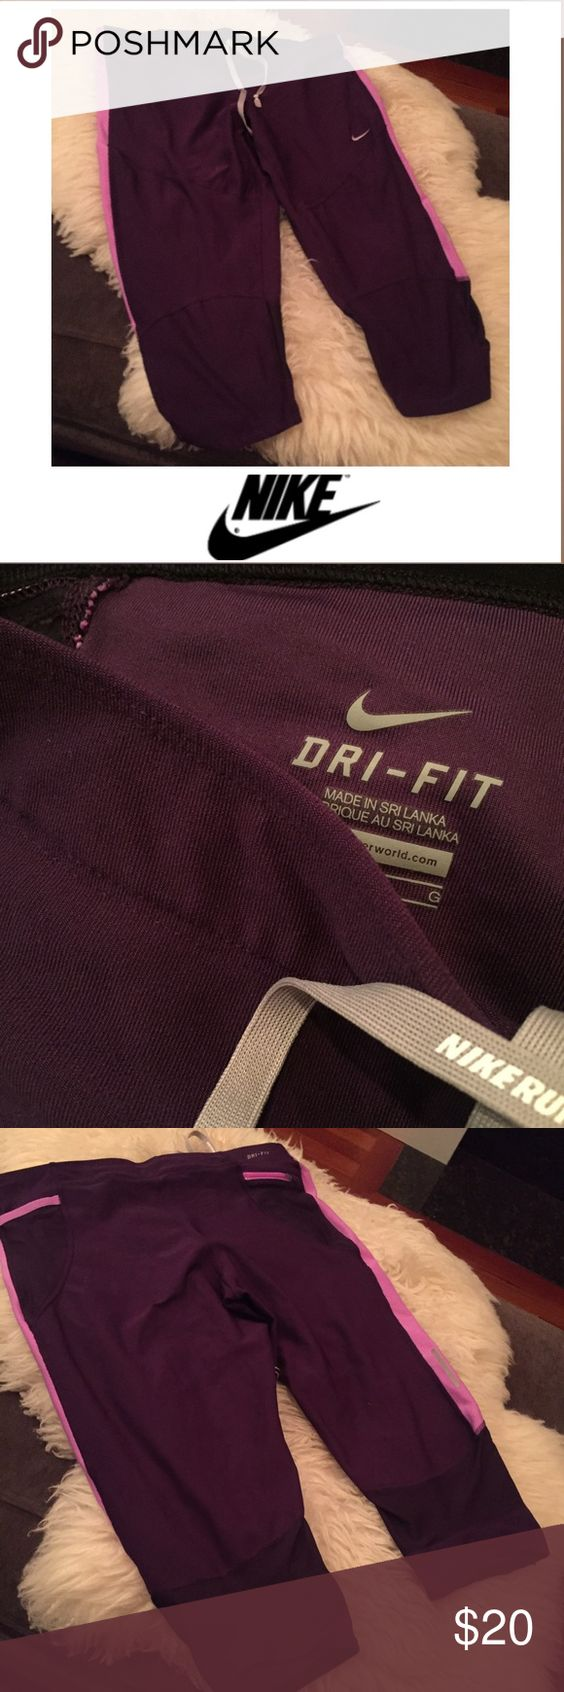 Nike Running Purple Athletic Crop Pants Nike Running Purple Athletic Crop Pants. Tight on the legs and calves. 18 inches long. 9 inch rise. Bought and wore just a few times. Excellent condition. Feel free to make an offer. Nike Pants Ankle & Cropped